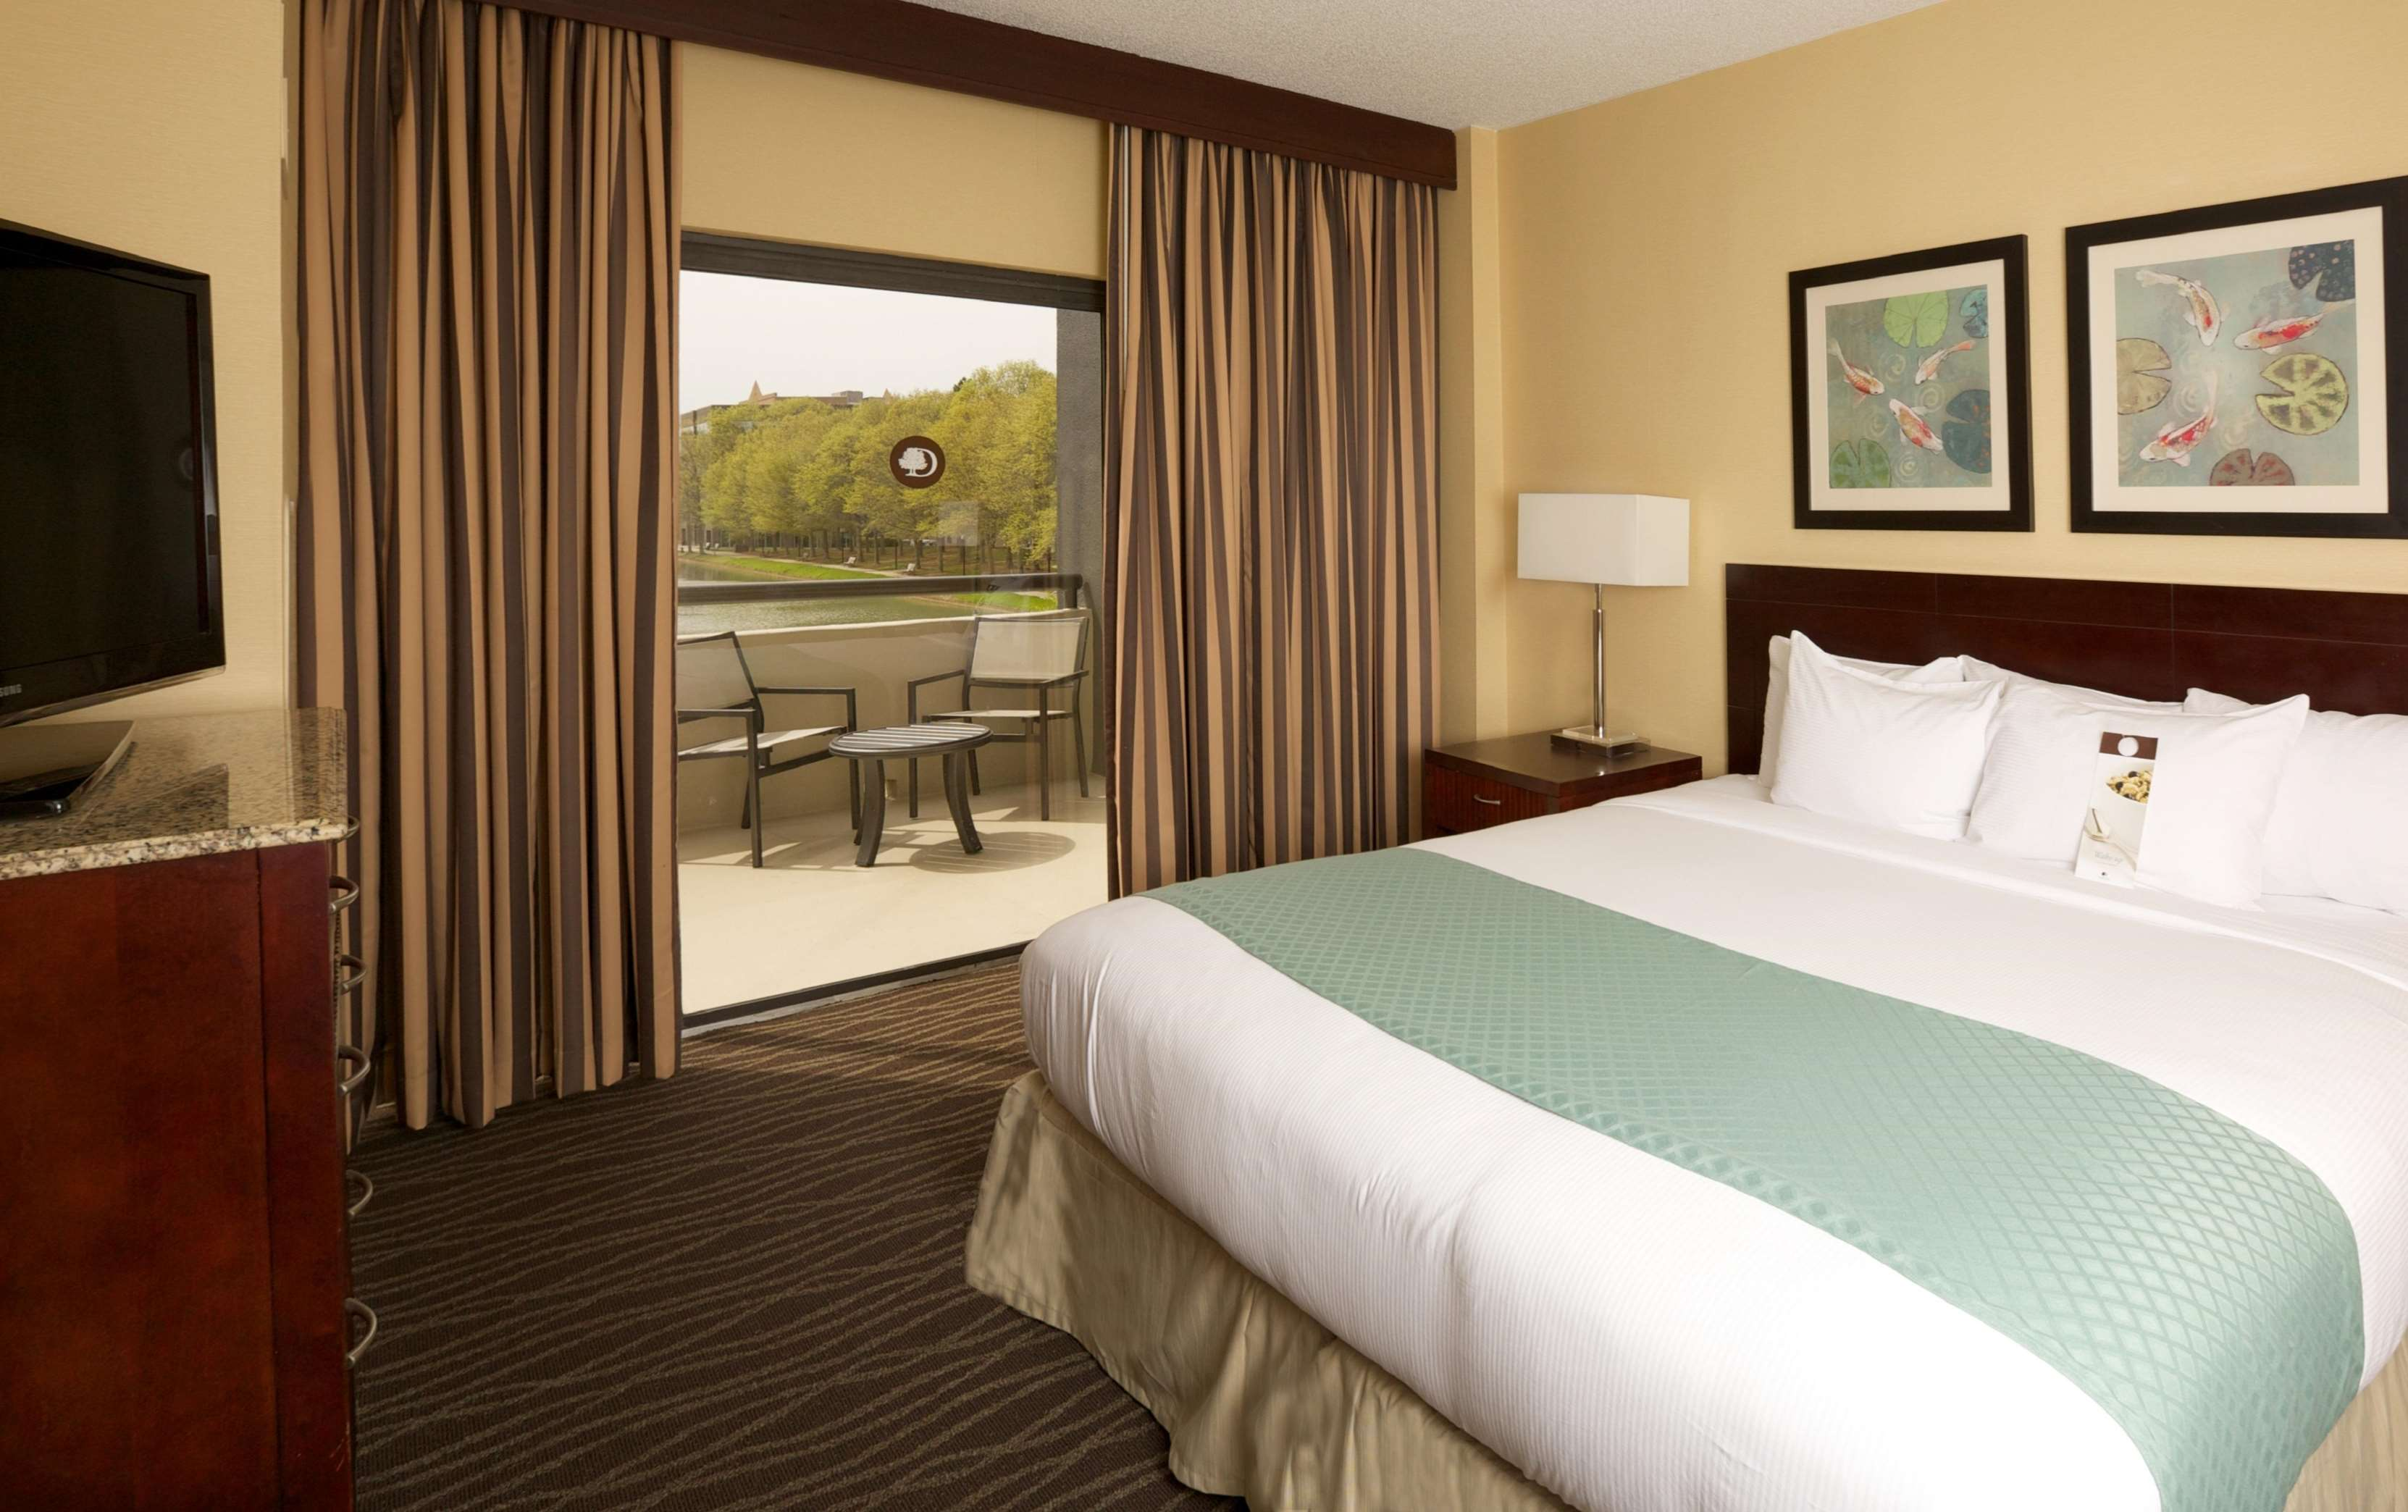 DoubleTree Suites by Hilton Hotel Raleigh - Durham image 26